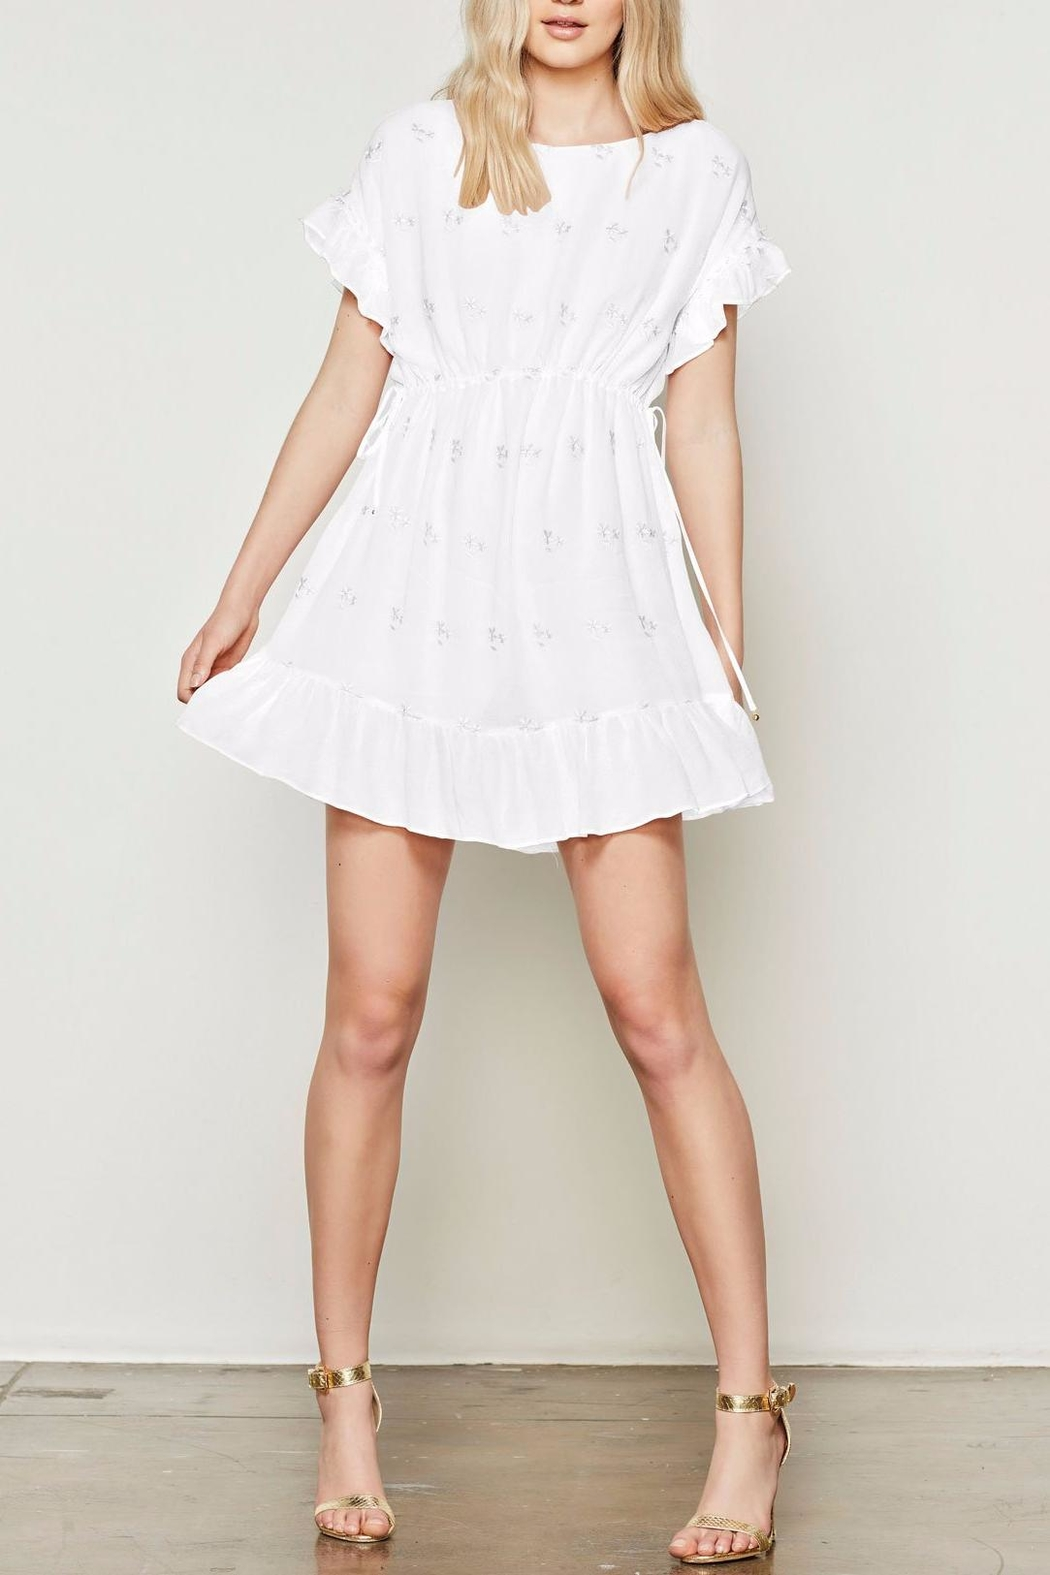 Stevie May White Dress - Front Cropped Image